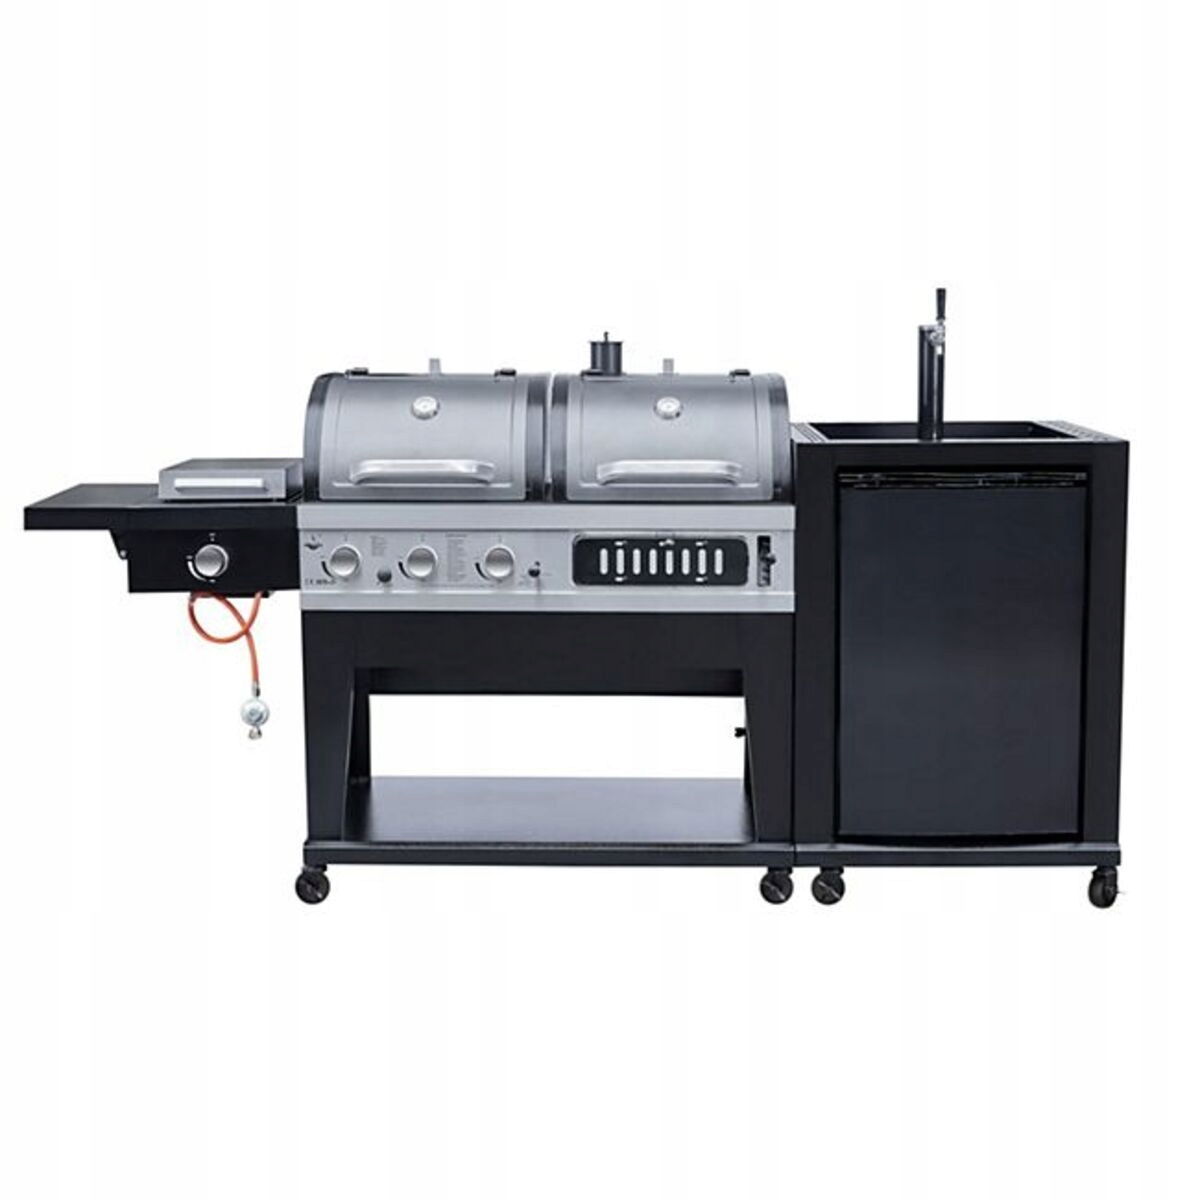 COMBI COAL GAS GRILL 3in1 REFRIGERATOR PILLOWER